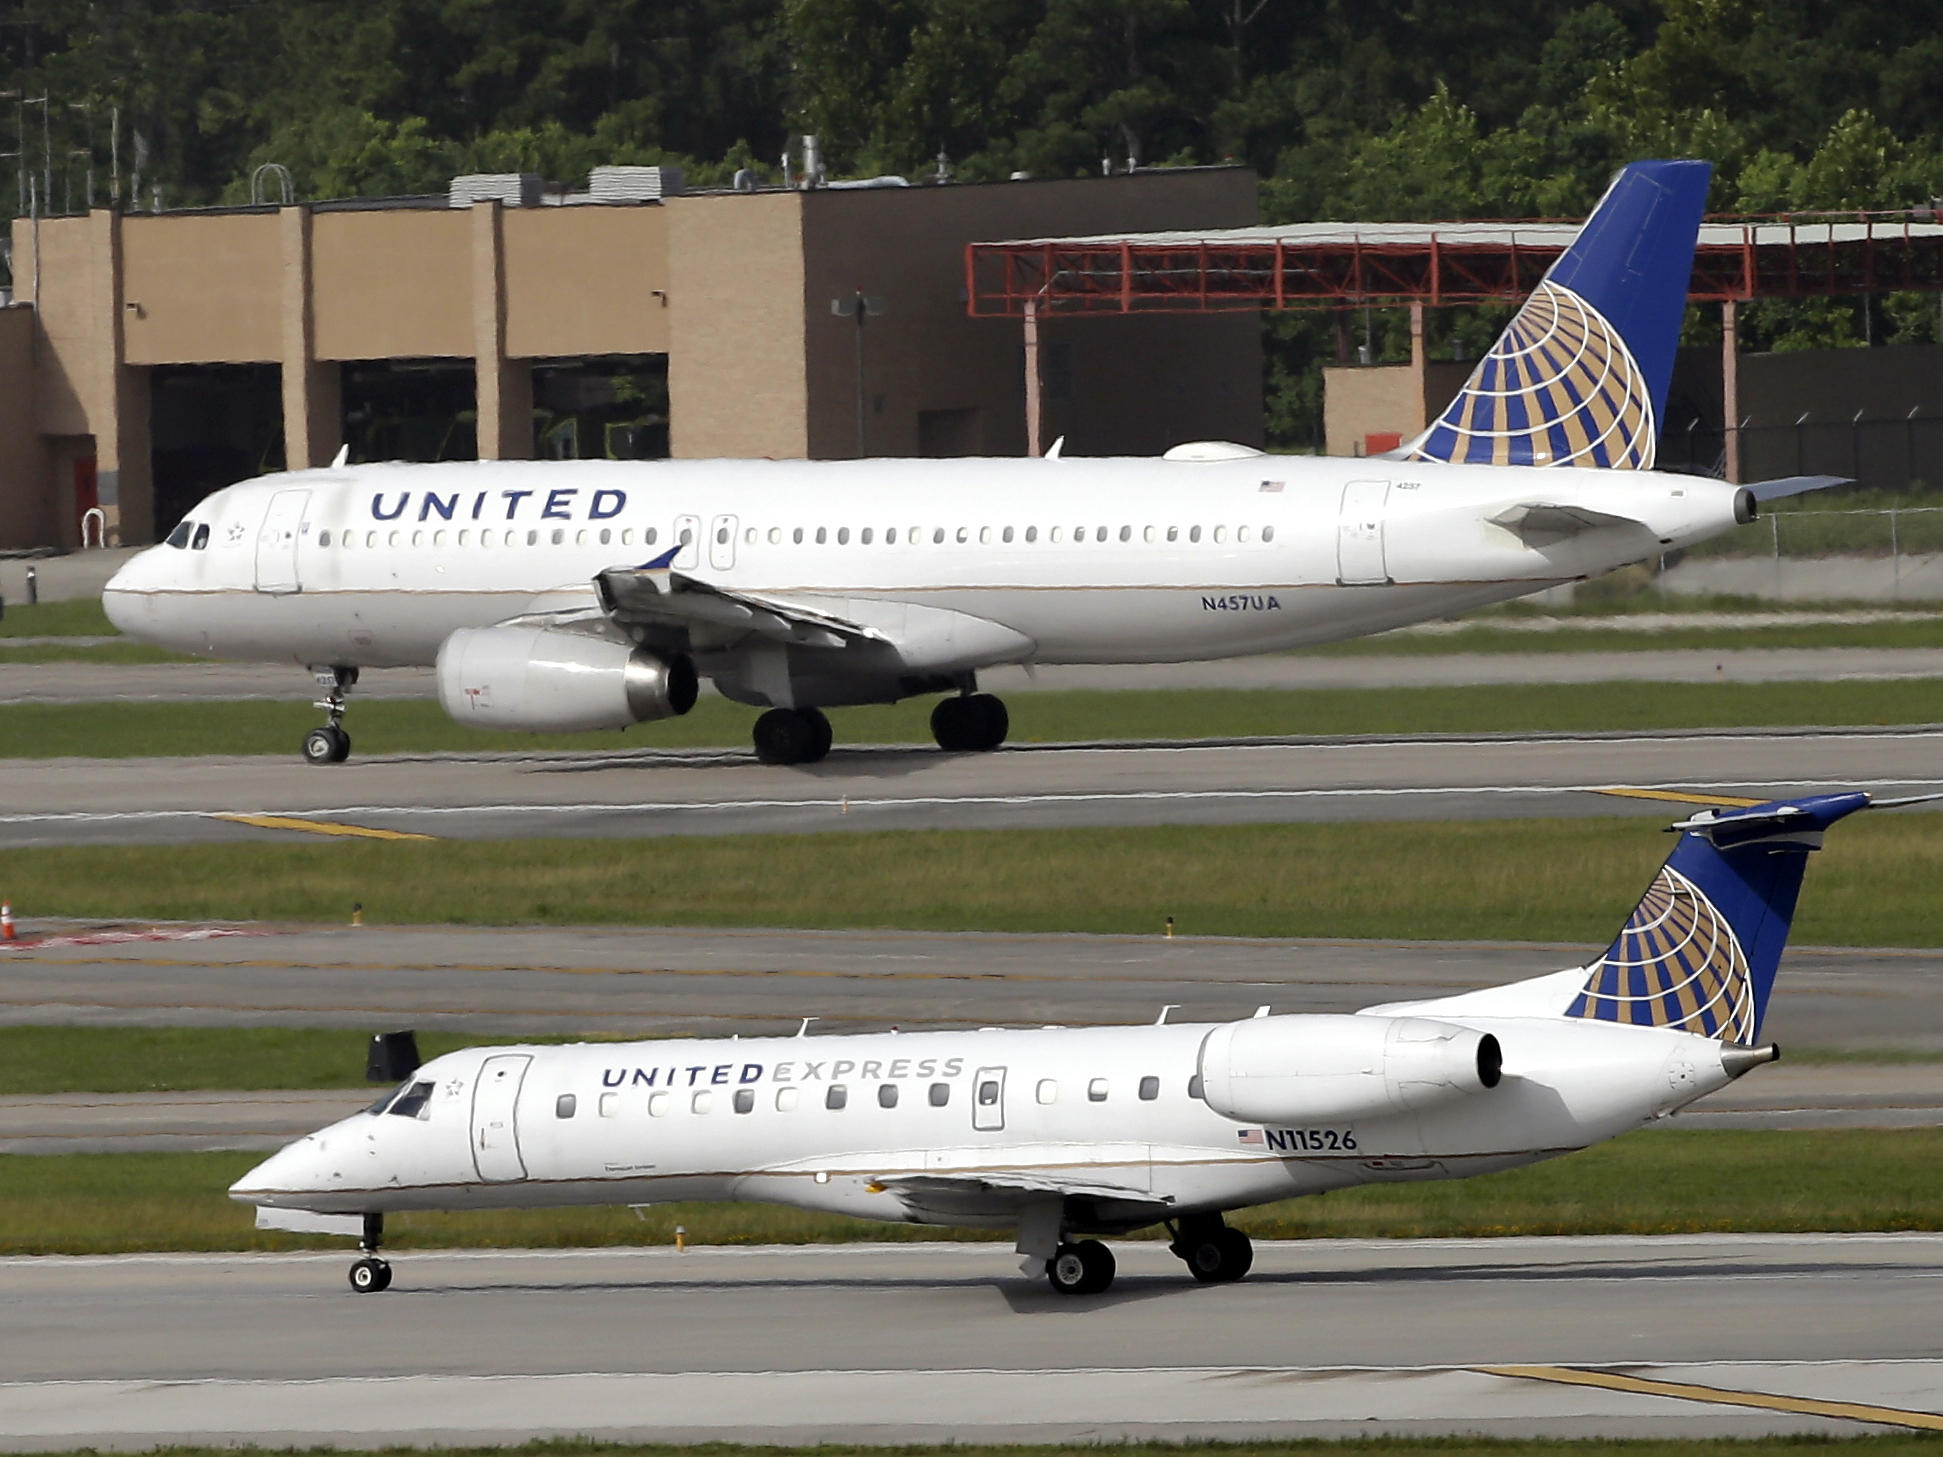 United Airlines Changes Policies Following Airplane Incident